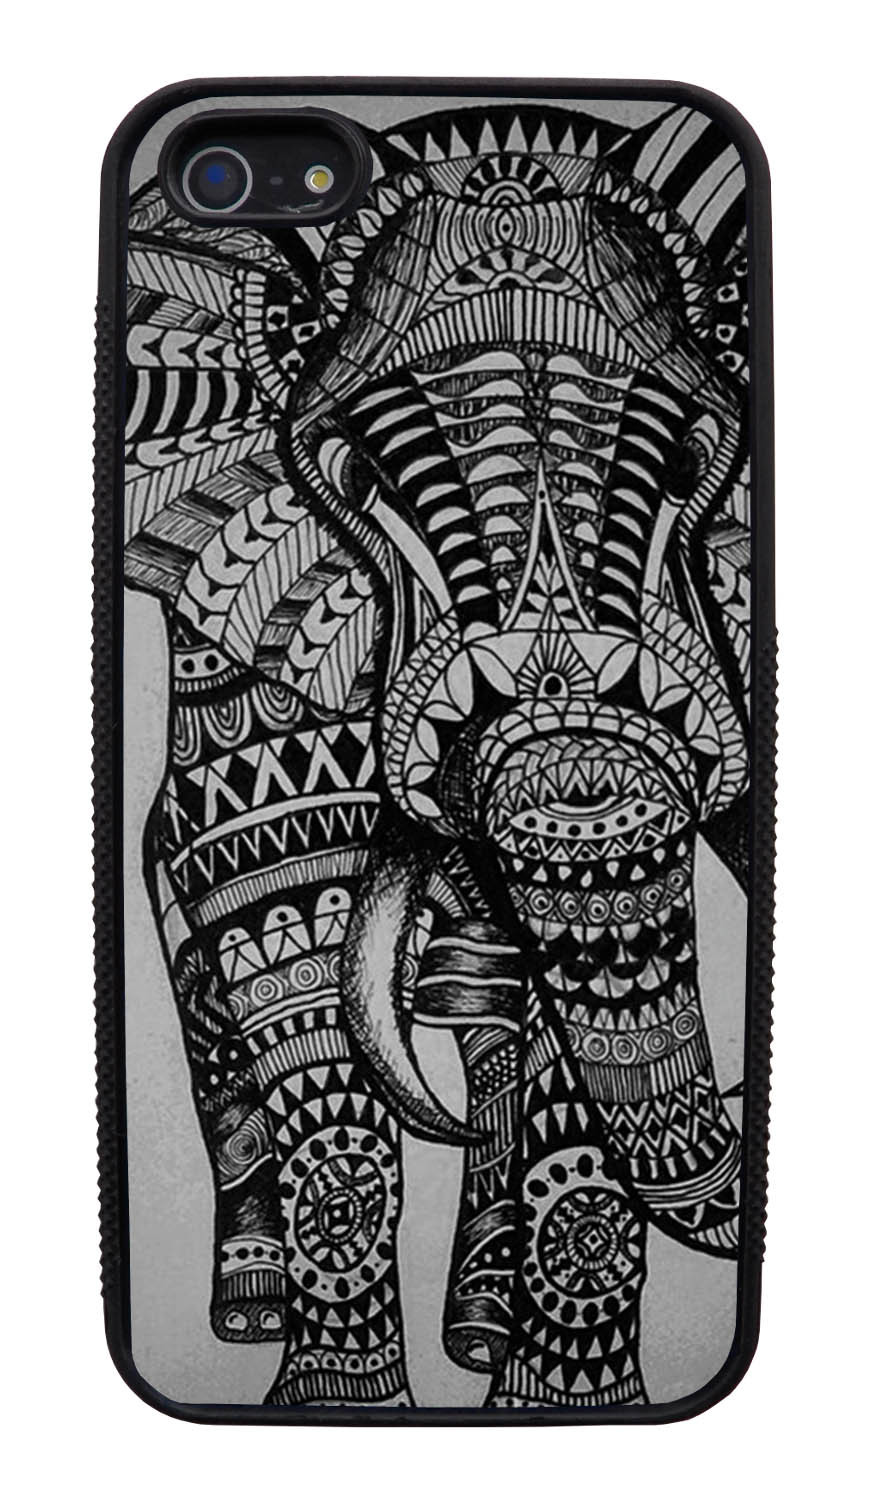 Apple iPhone 5 / 5S Aztec Case - Pen Drawing on Grey - Tribal Elephant - Black Slim Rubber Case